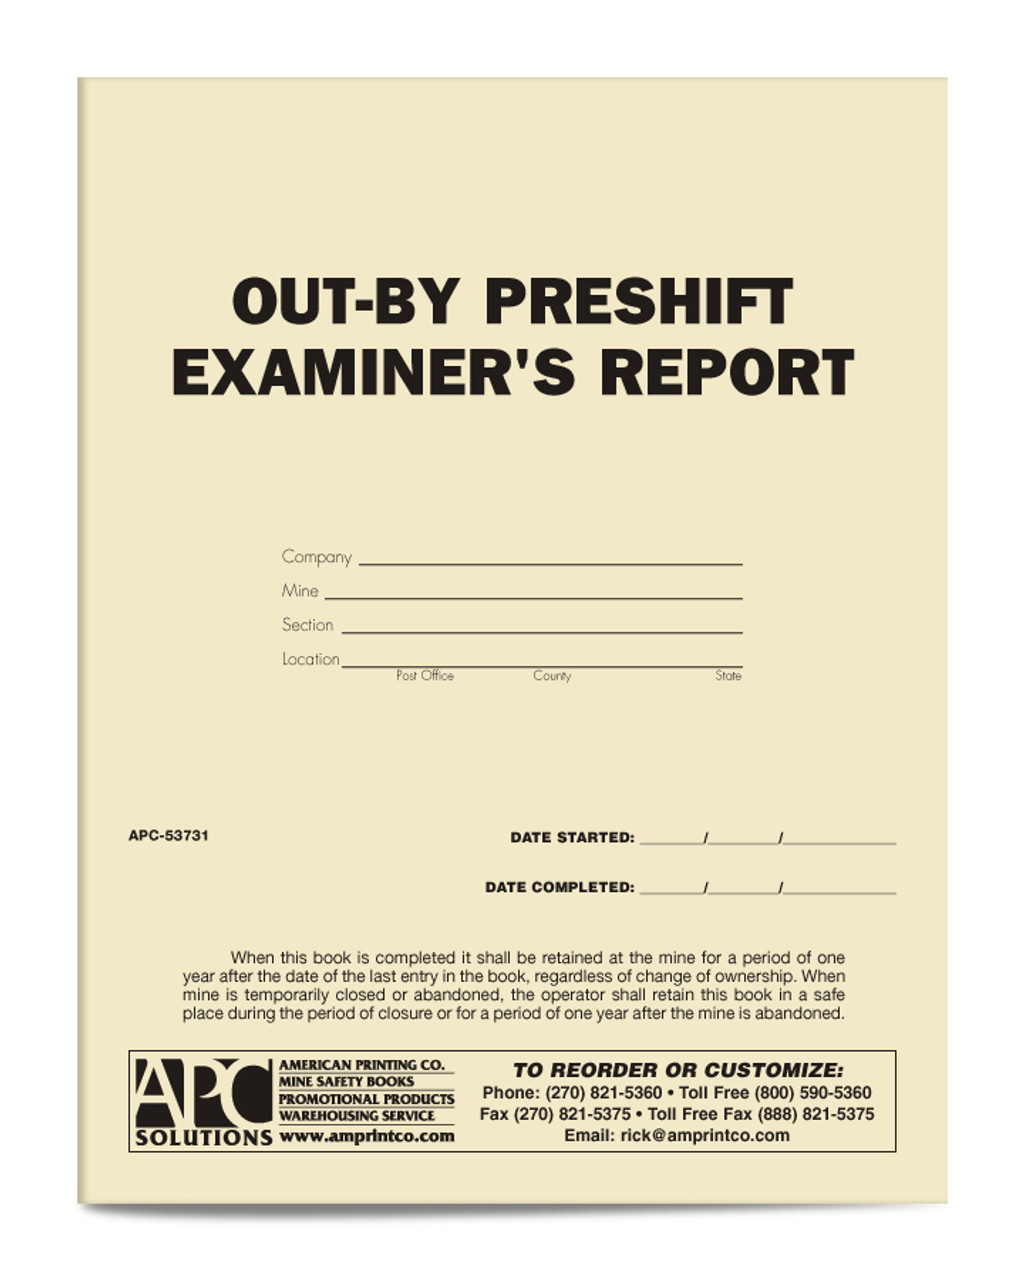 APC 53731: Out-by Pre-shift Examiner's Report